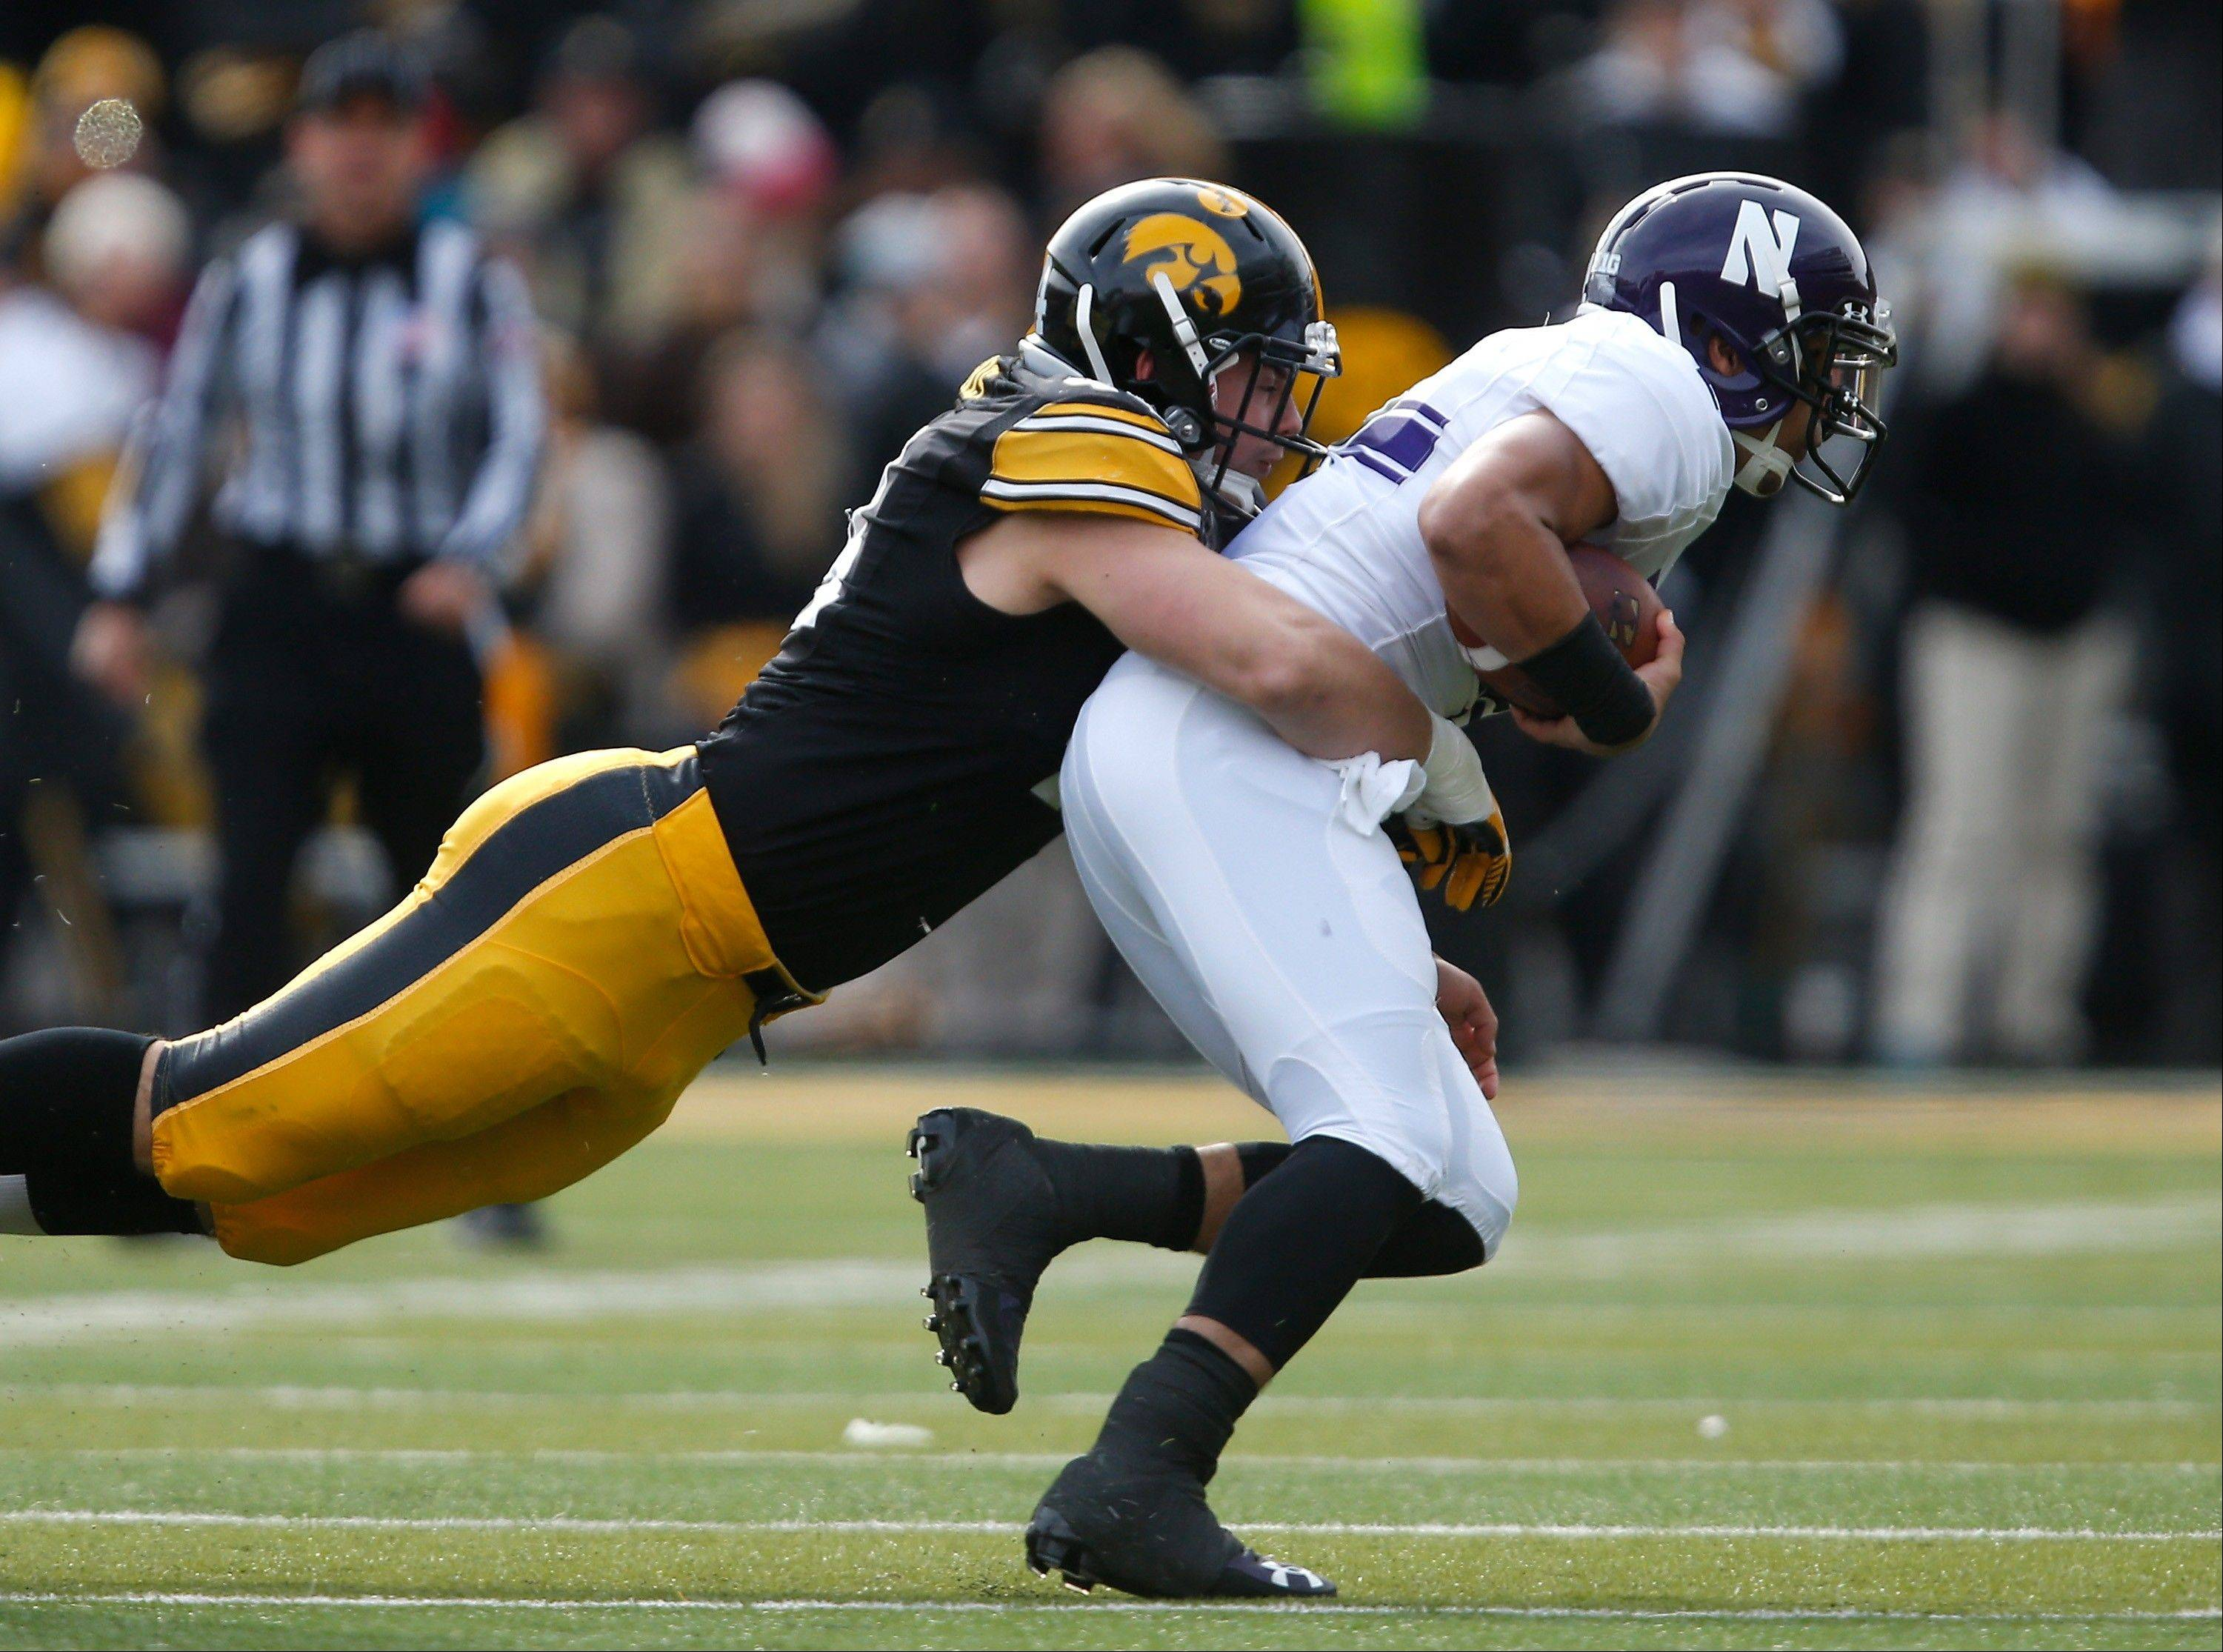 Iowa linebacker James Morris brings down Northwestern quarterback Kain Colter during the first half of Saturday's win in Iowa City.